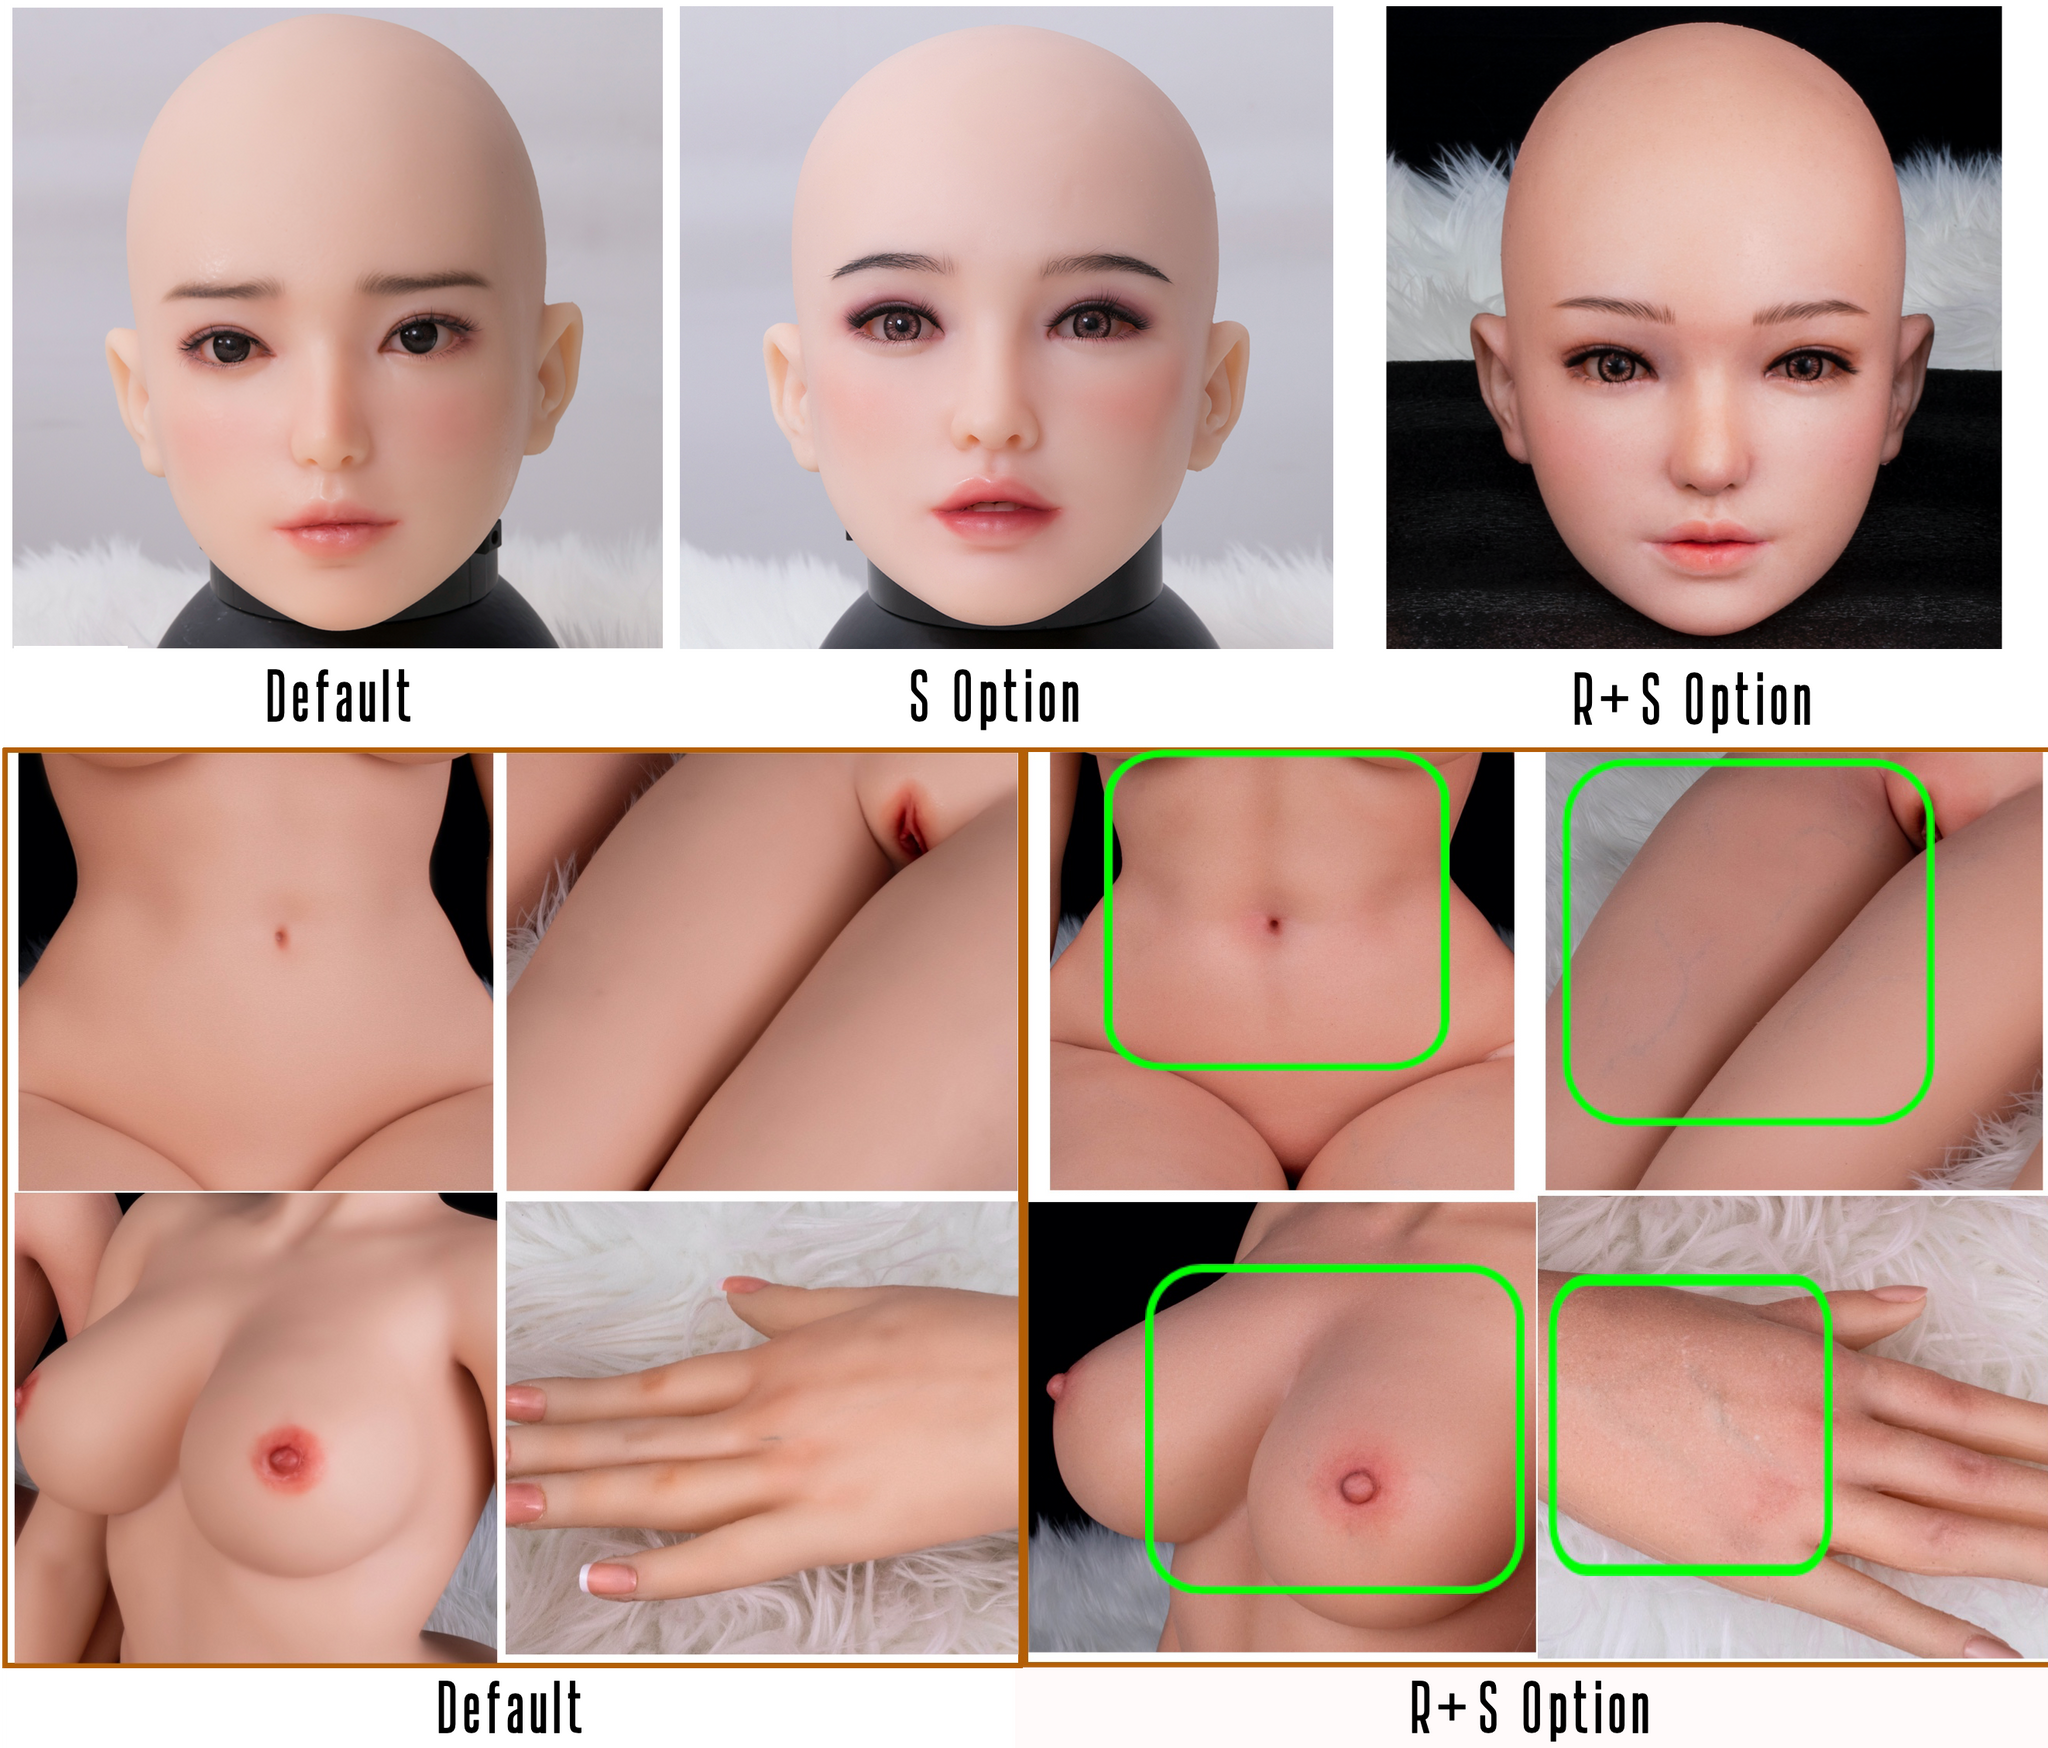 myrobotdoll.com Sino-doll R+S effect comparison